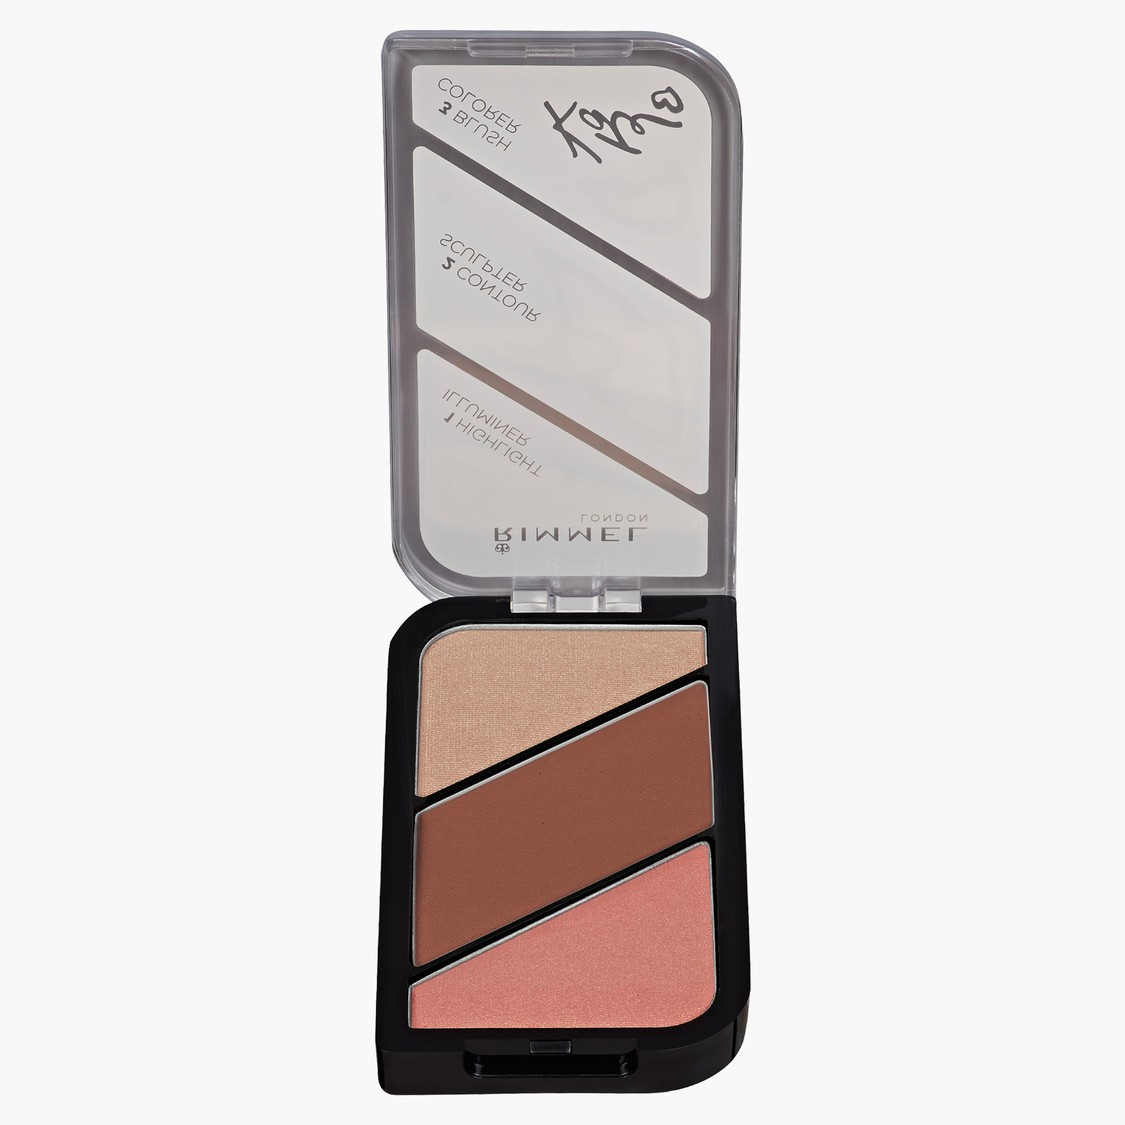 Rimmel Kate Face Kit Palette